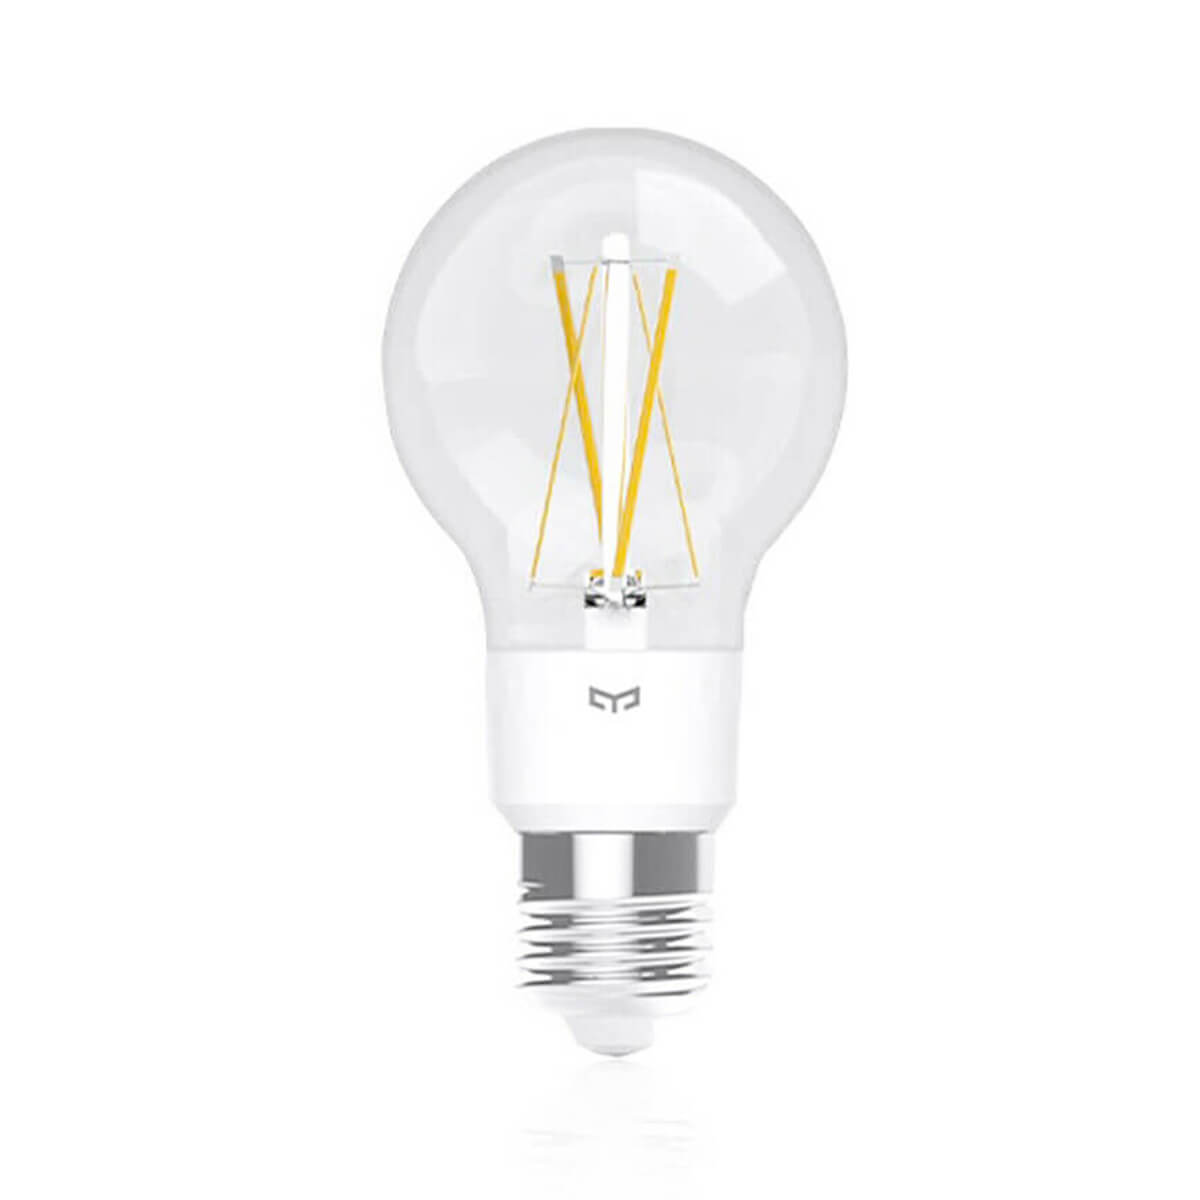 Смарт-лампочка Yeelight Smart Filament Bulb E27 YLDP12YL